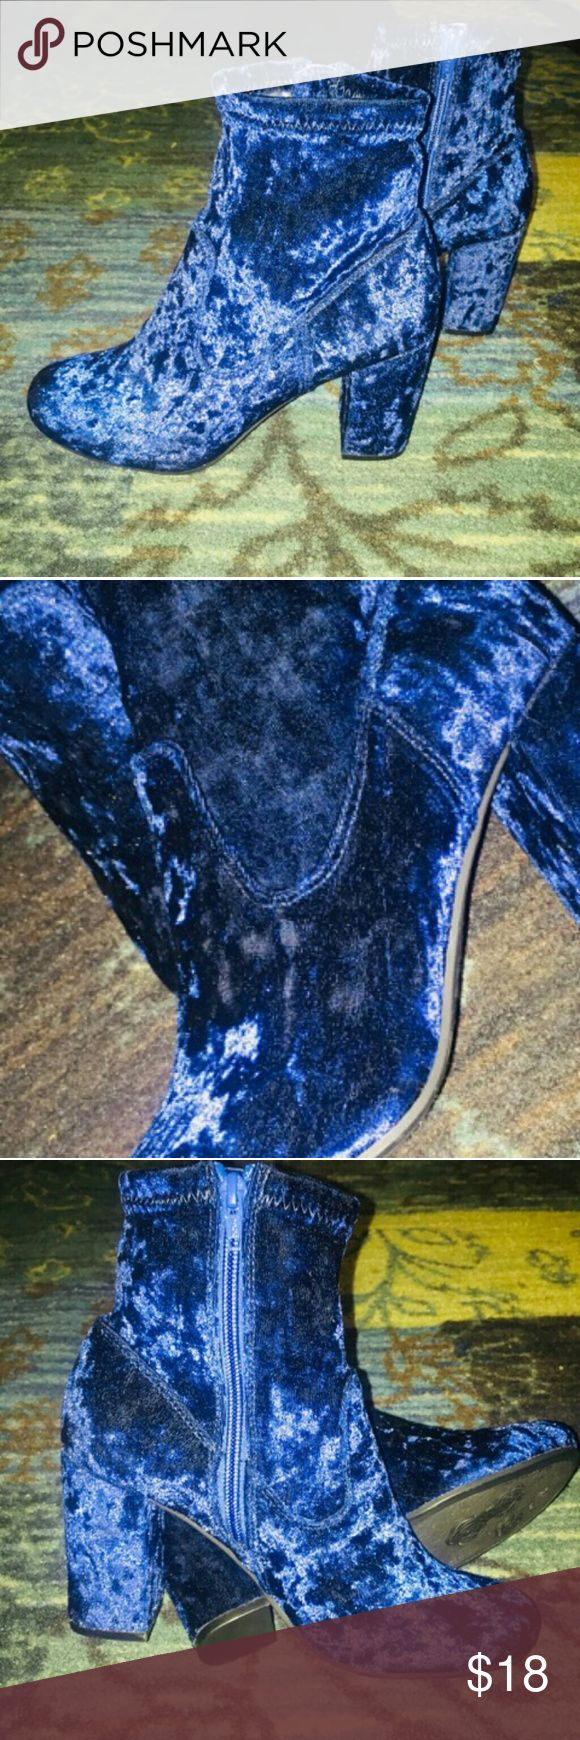 Carlos Santana boots New-- Carlos Santana royal blue velvet boots. Round toe, 3 inch heel with inside zipper. Be in style with these fashion foward jems. Carlos Santana Shoes Ankle Boots & Booties